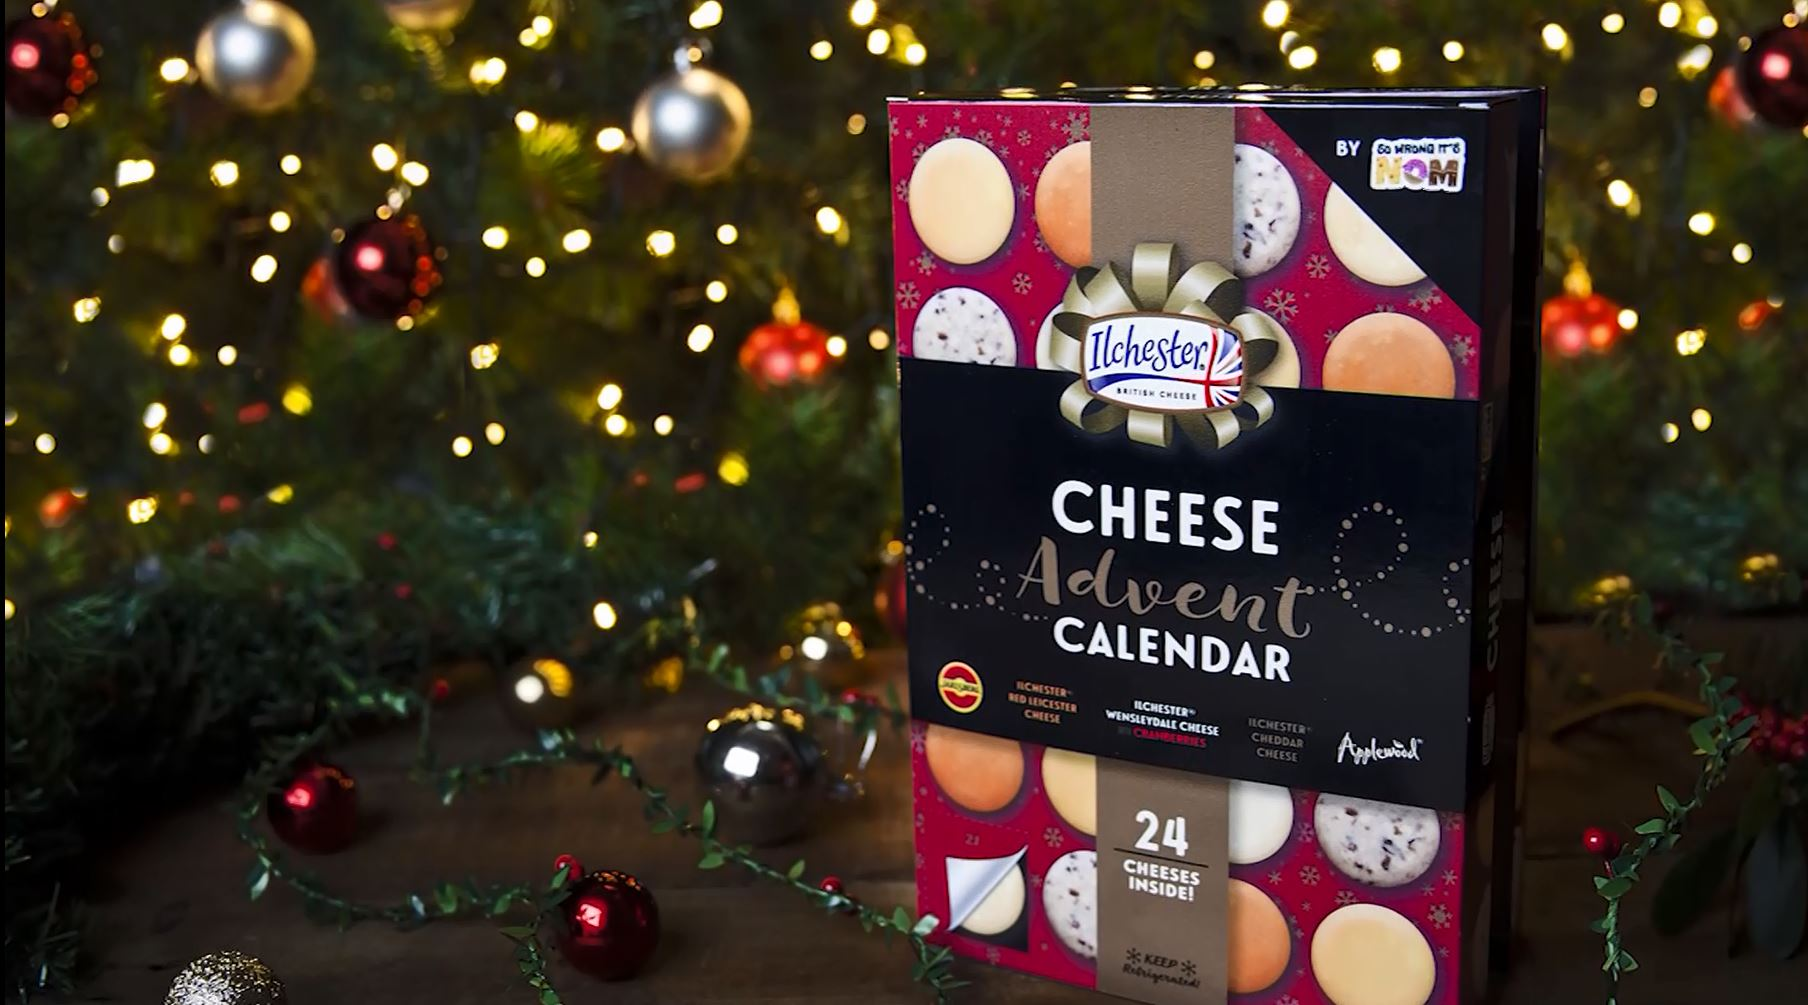 Target offering cheese advent calendar this holiday season